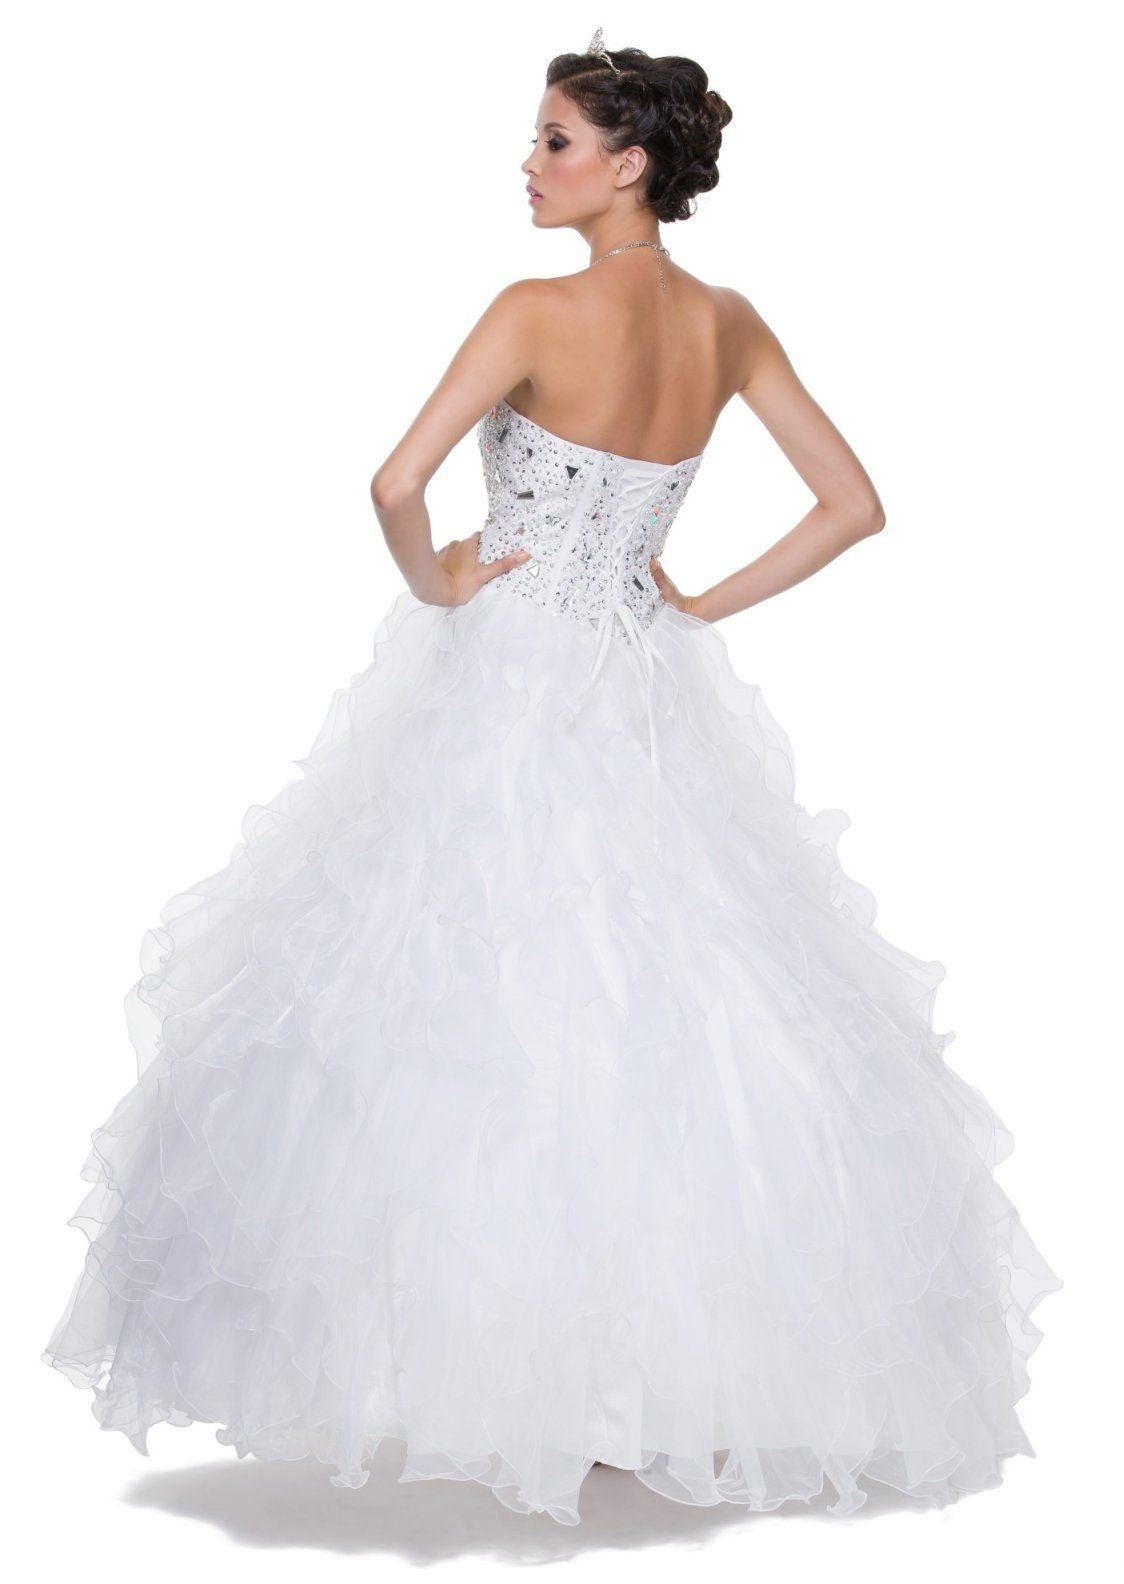 Special Poofy White Quinceanera Organza Dress Boned Strapless